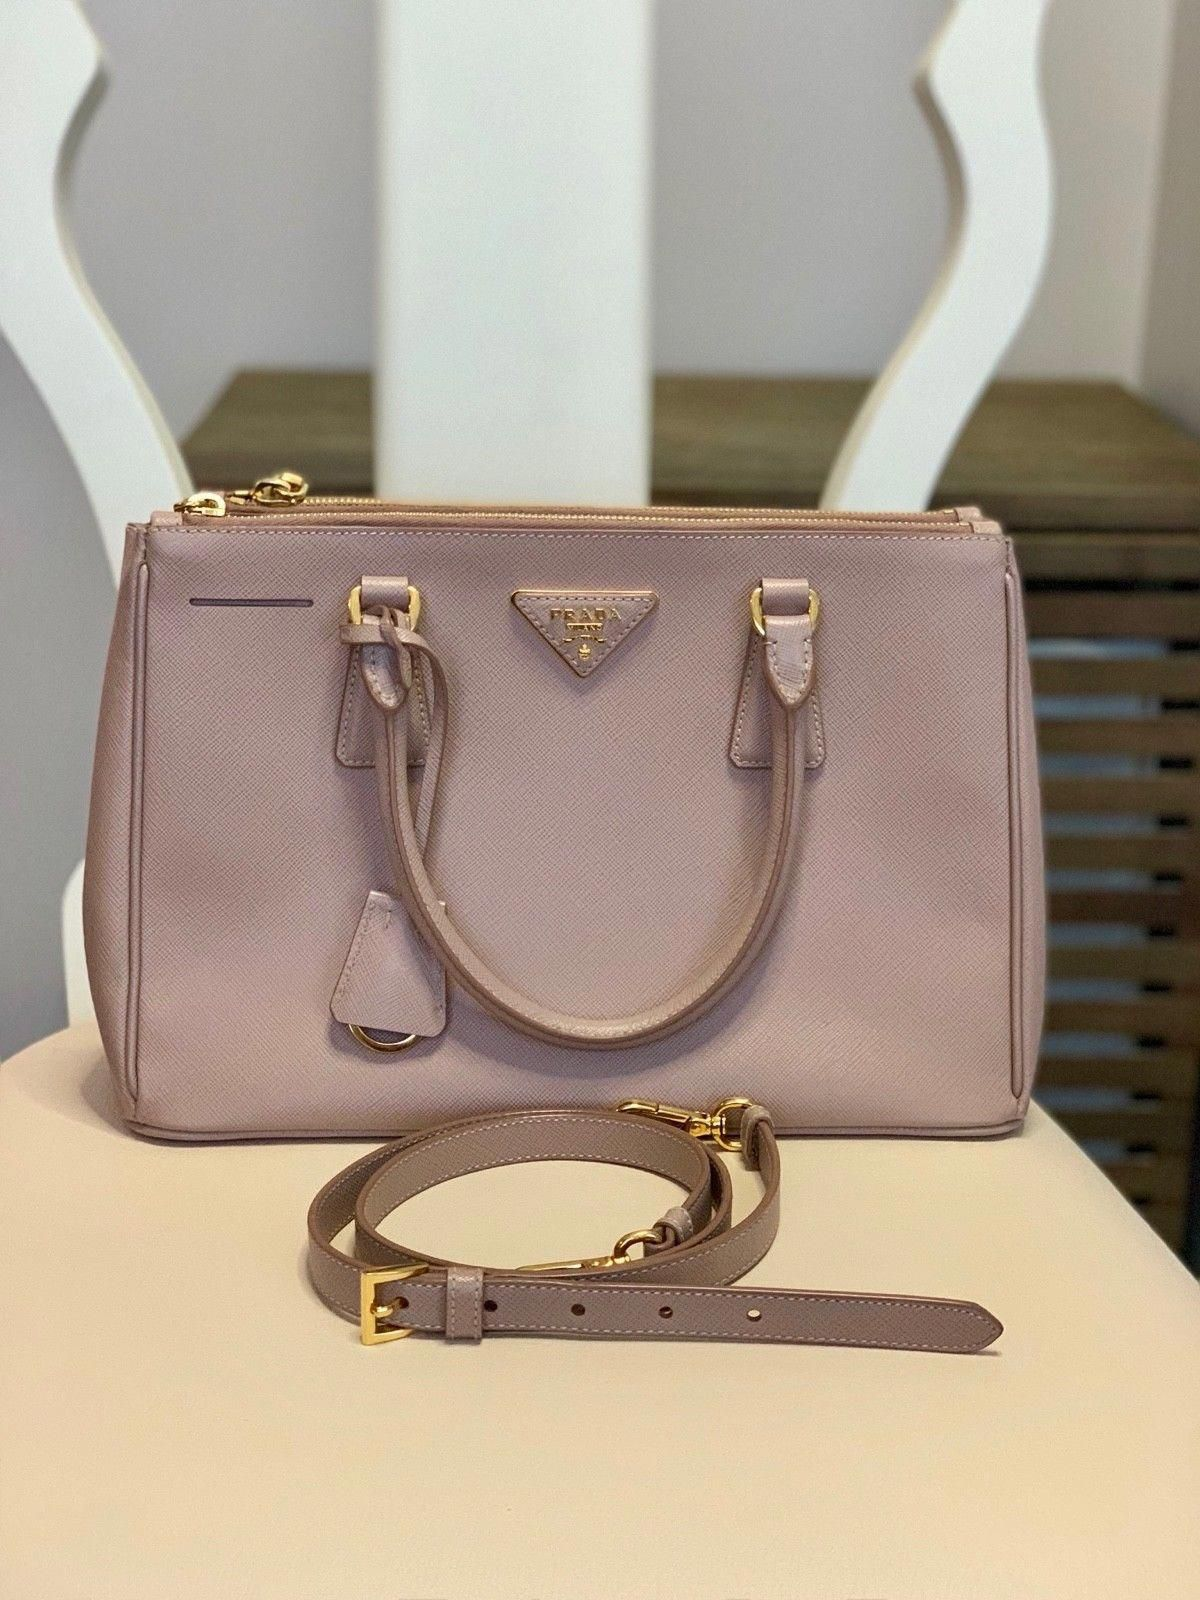 c3b007dd55af80 Prada Killer Satchel Shoulder Hand Bag Saffiano Leather Pink #Pradahandbags